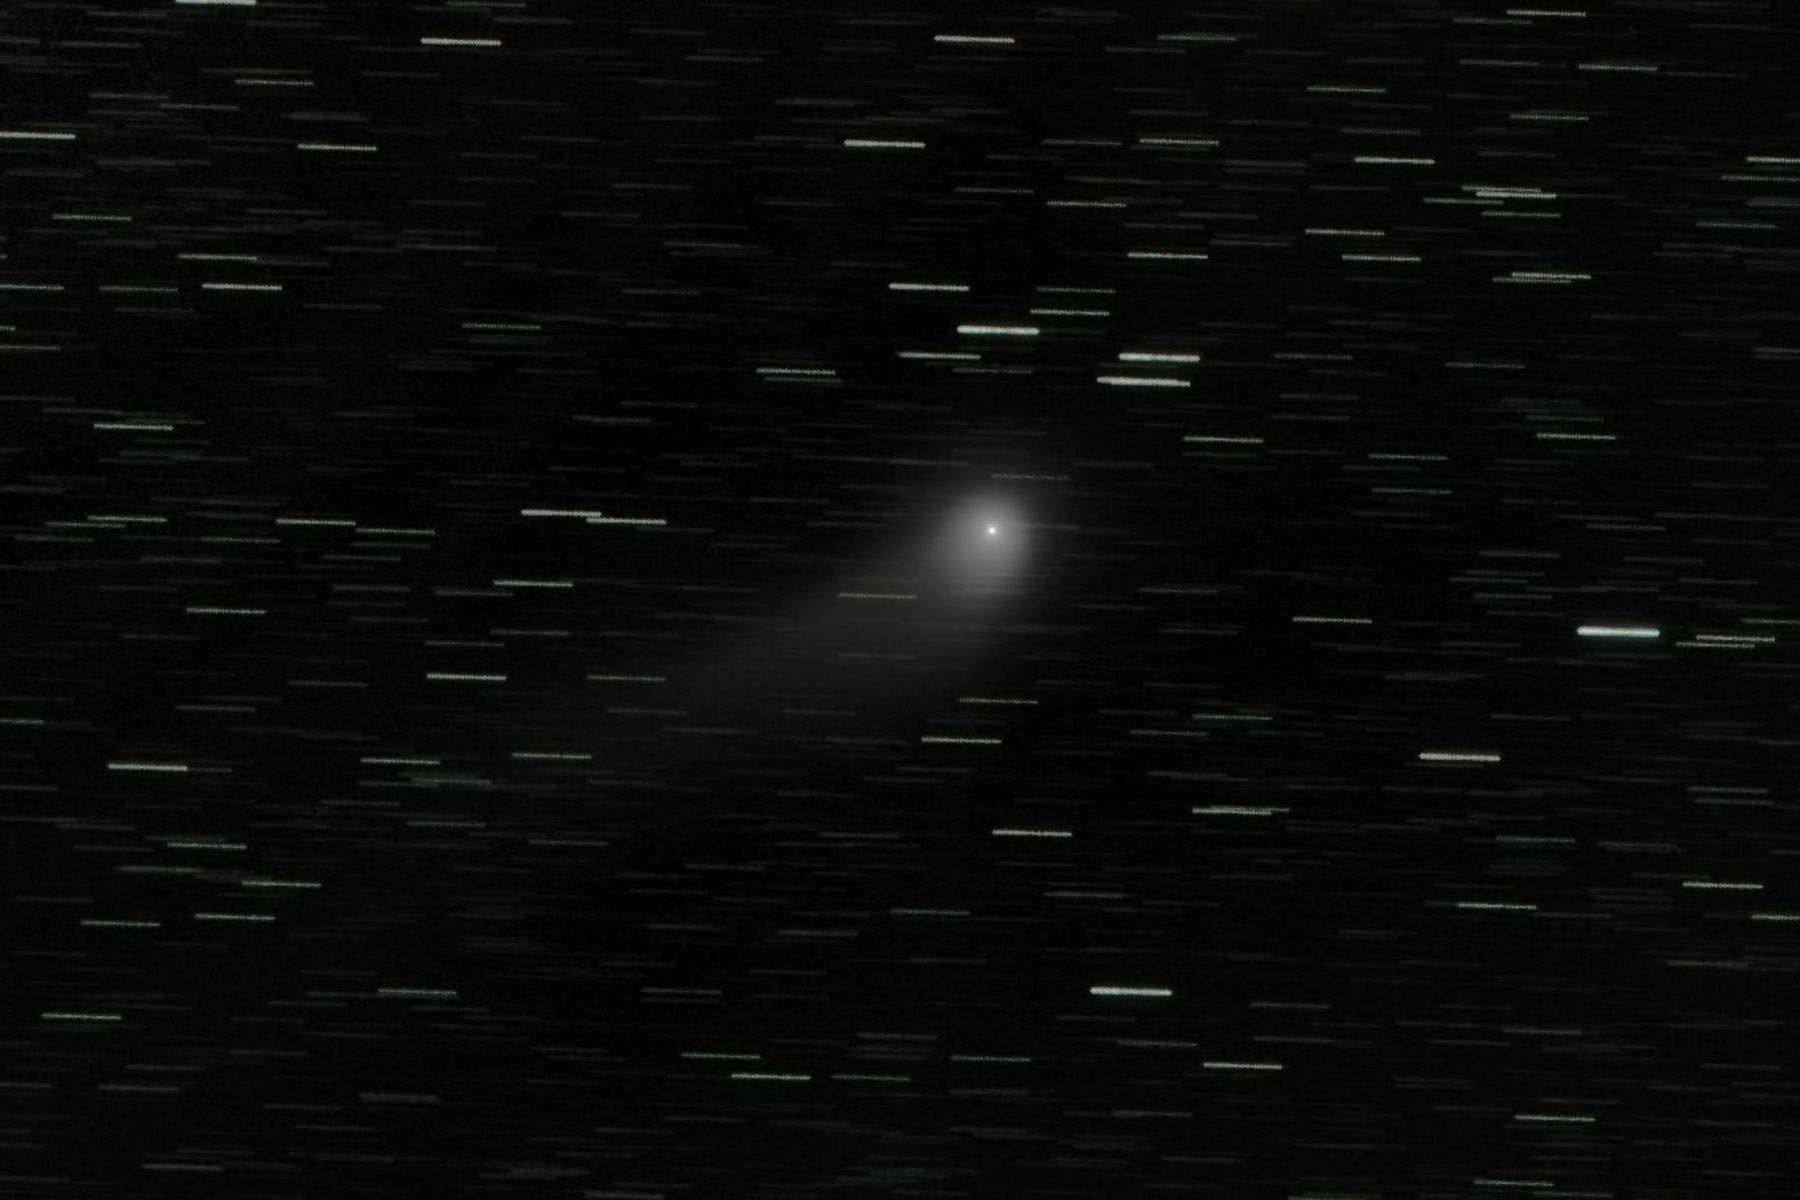 Cometa C/2013 US10 Catalina